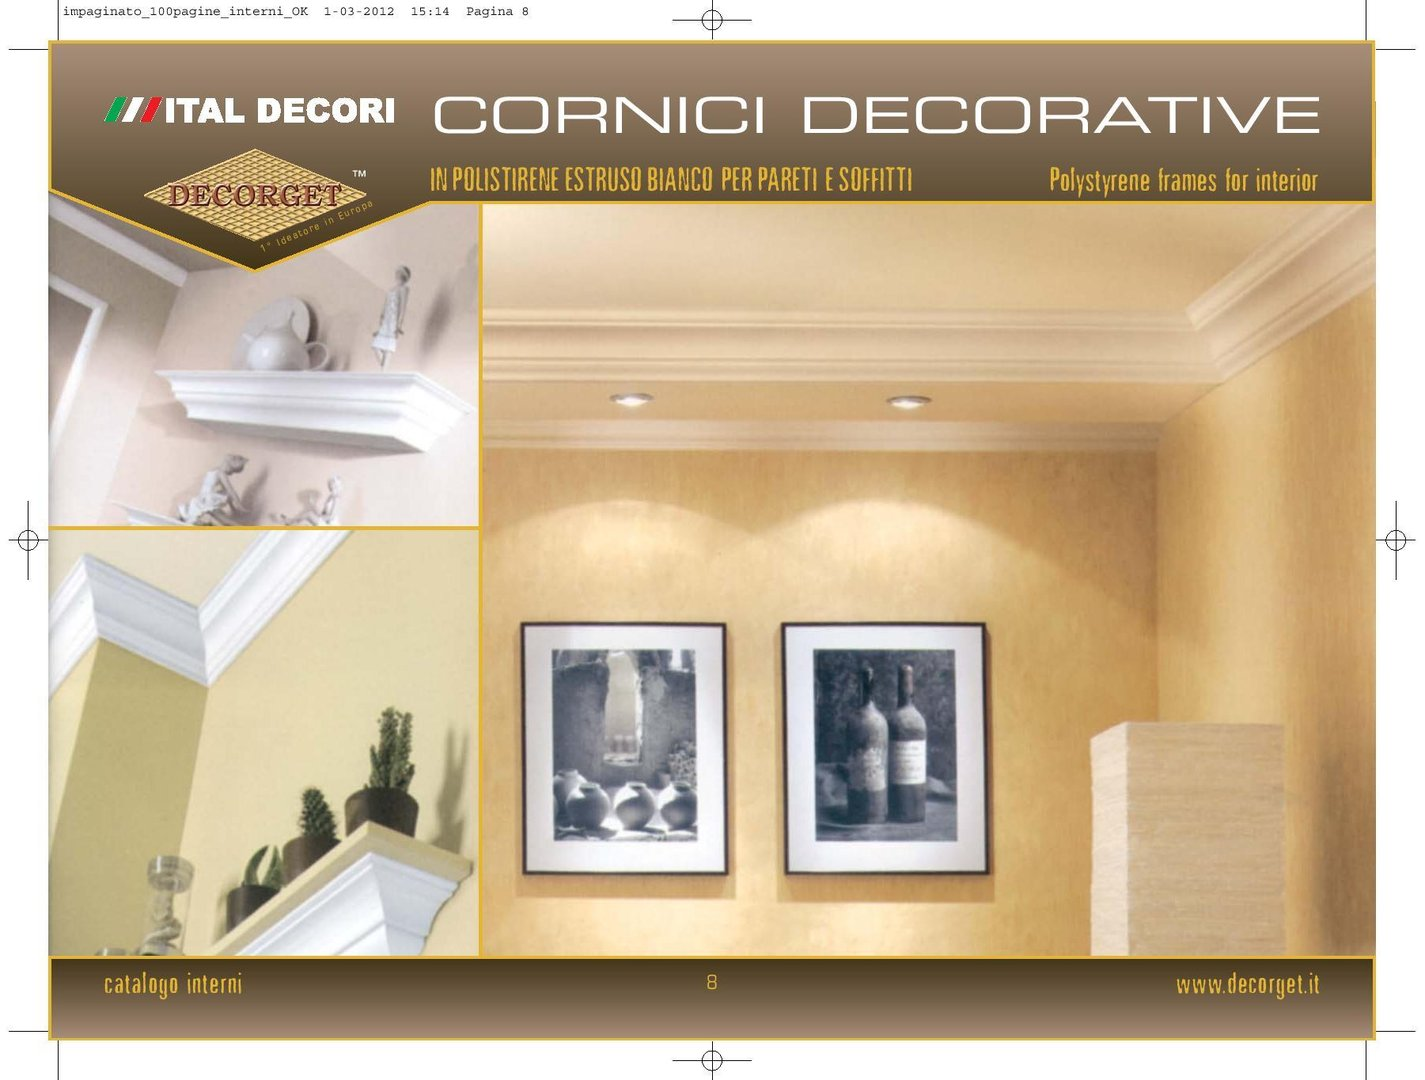 Cornici in polistirene estruso bianco for Cornici decorative polistirolo